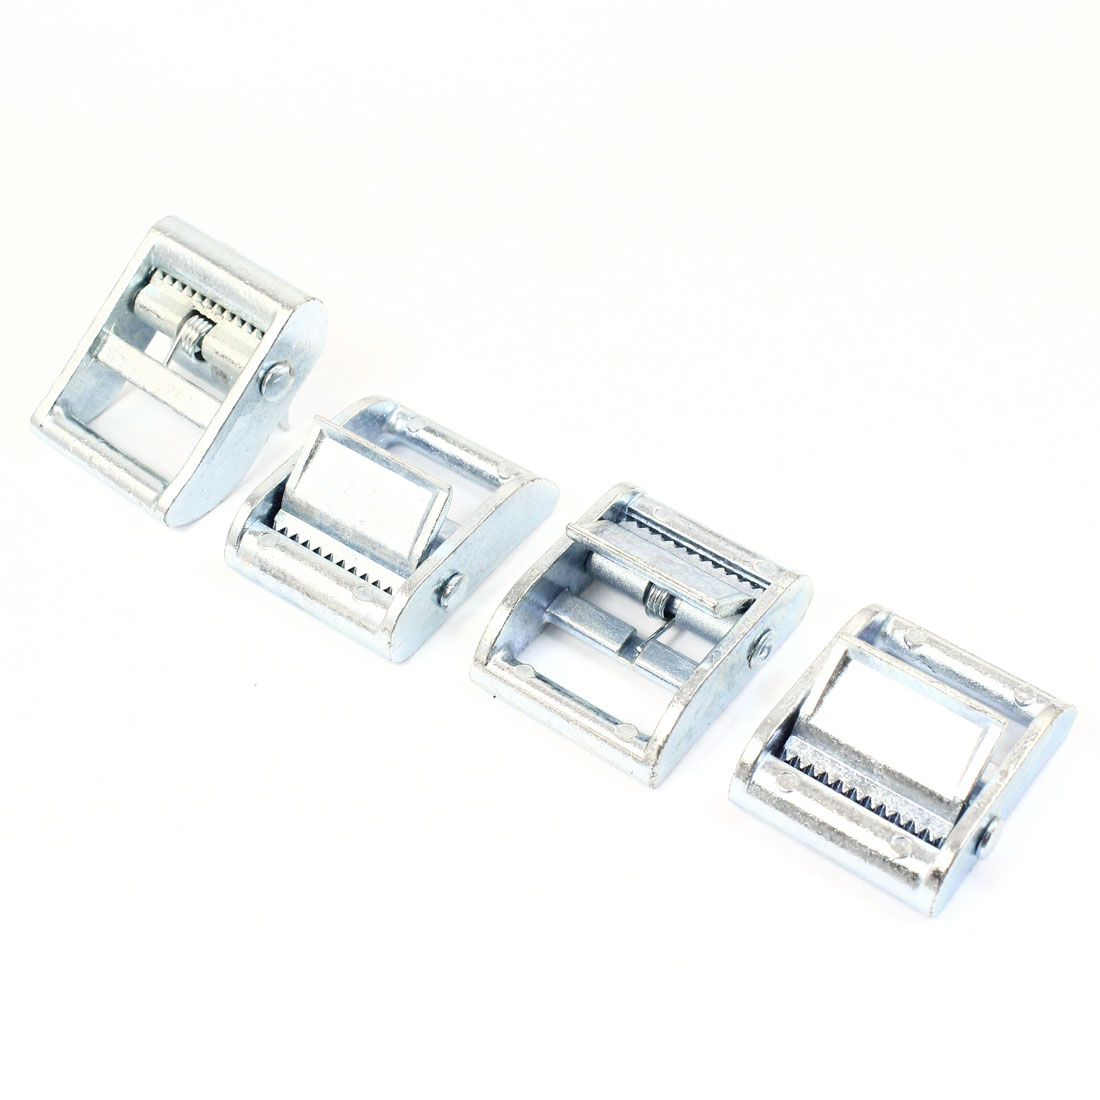 4pcs Silver Tone Zinc Alloy Cam Buckle for 25mm Tie Down Strap